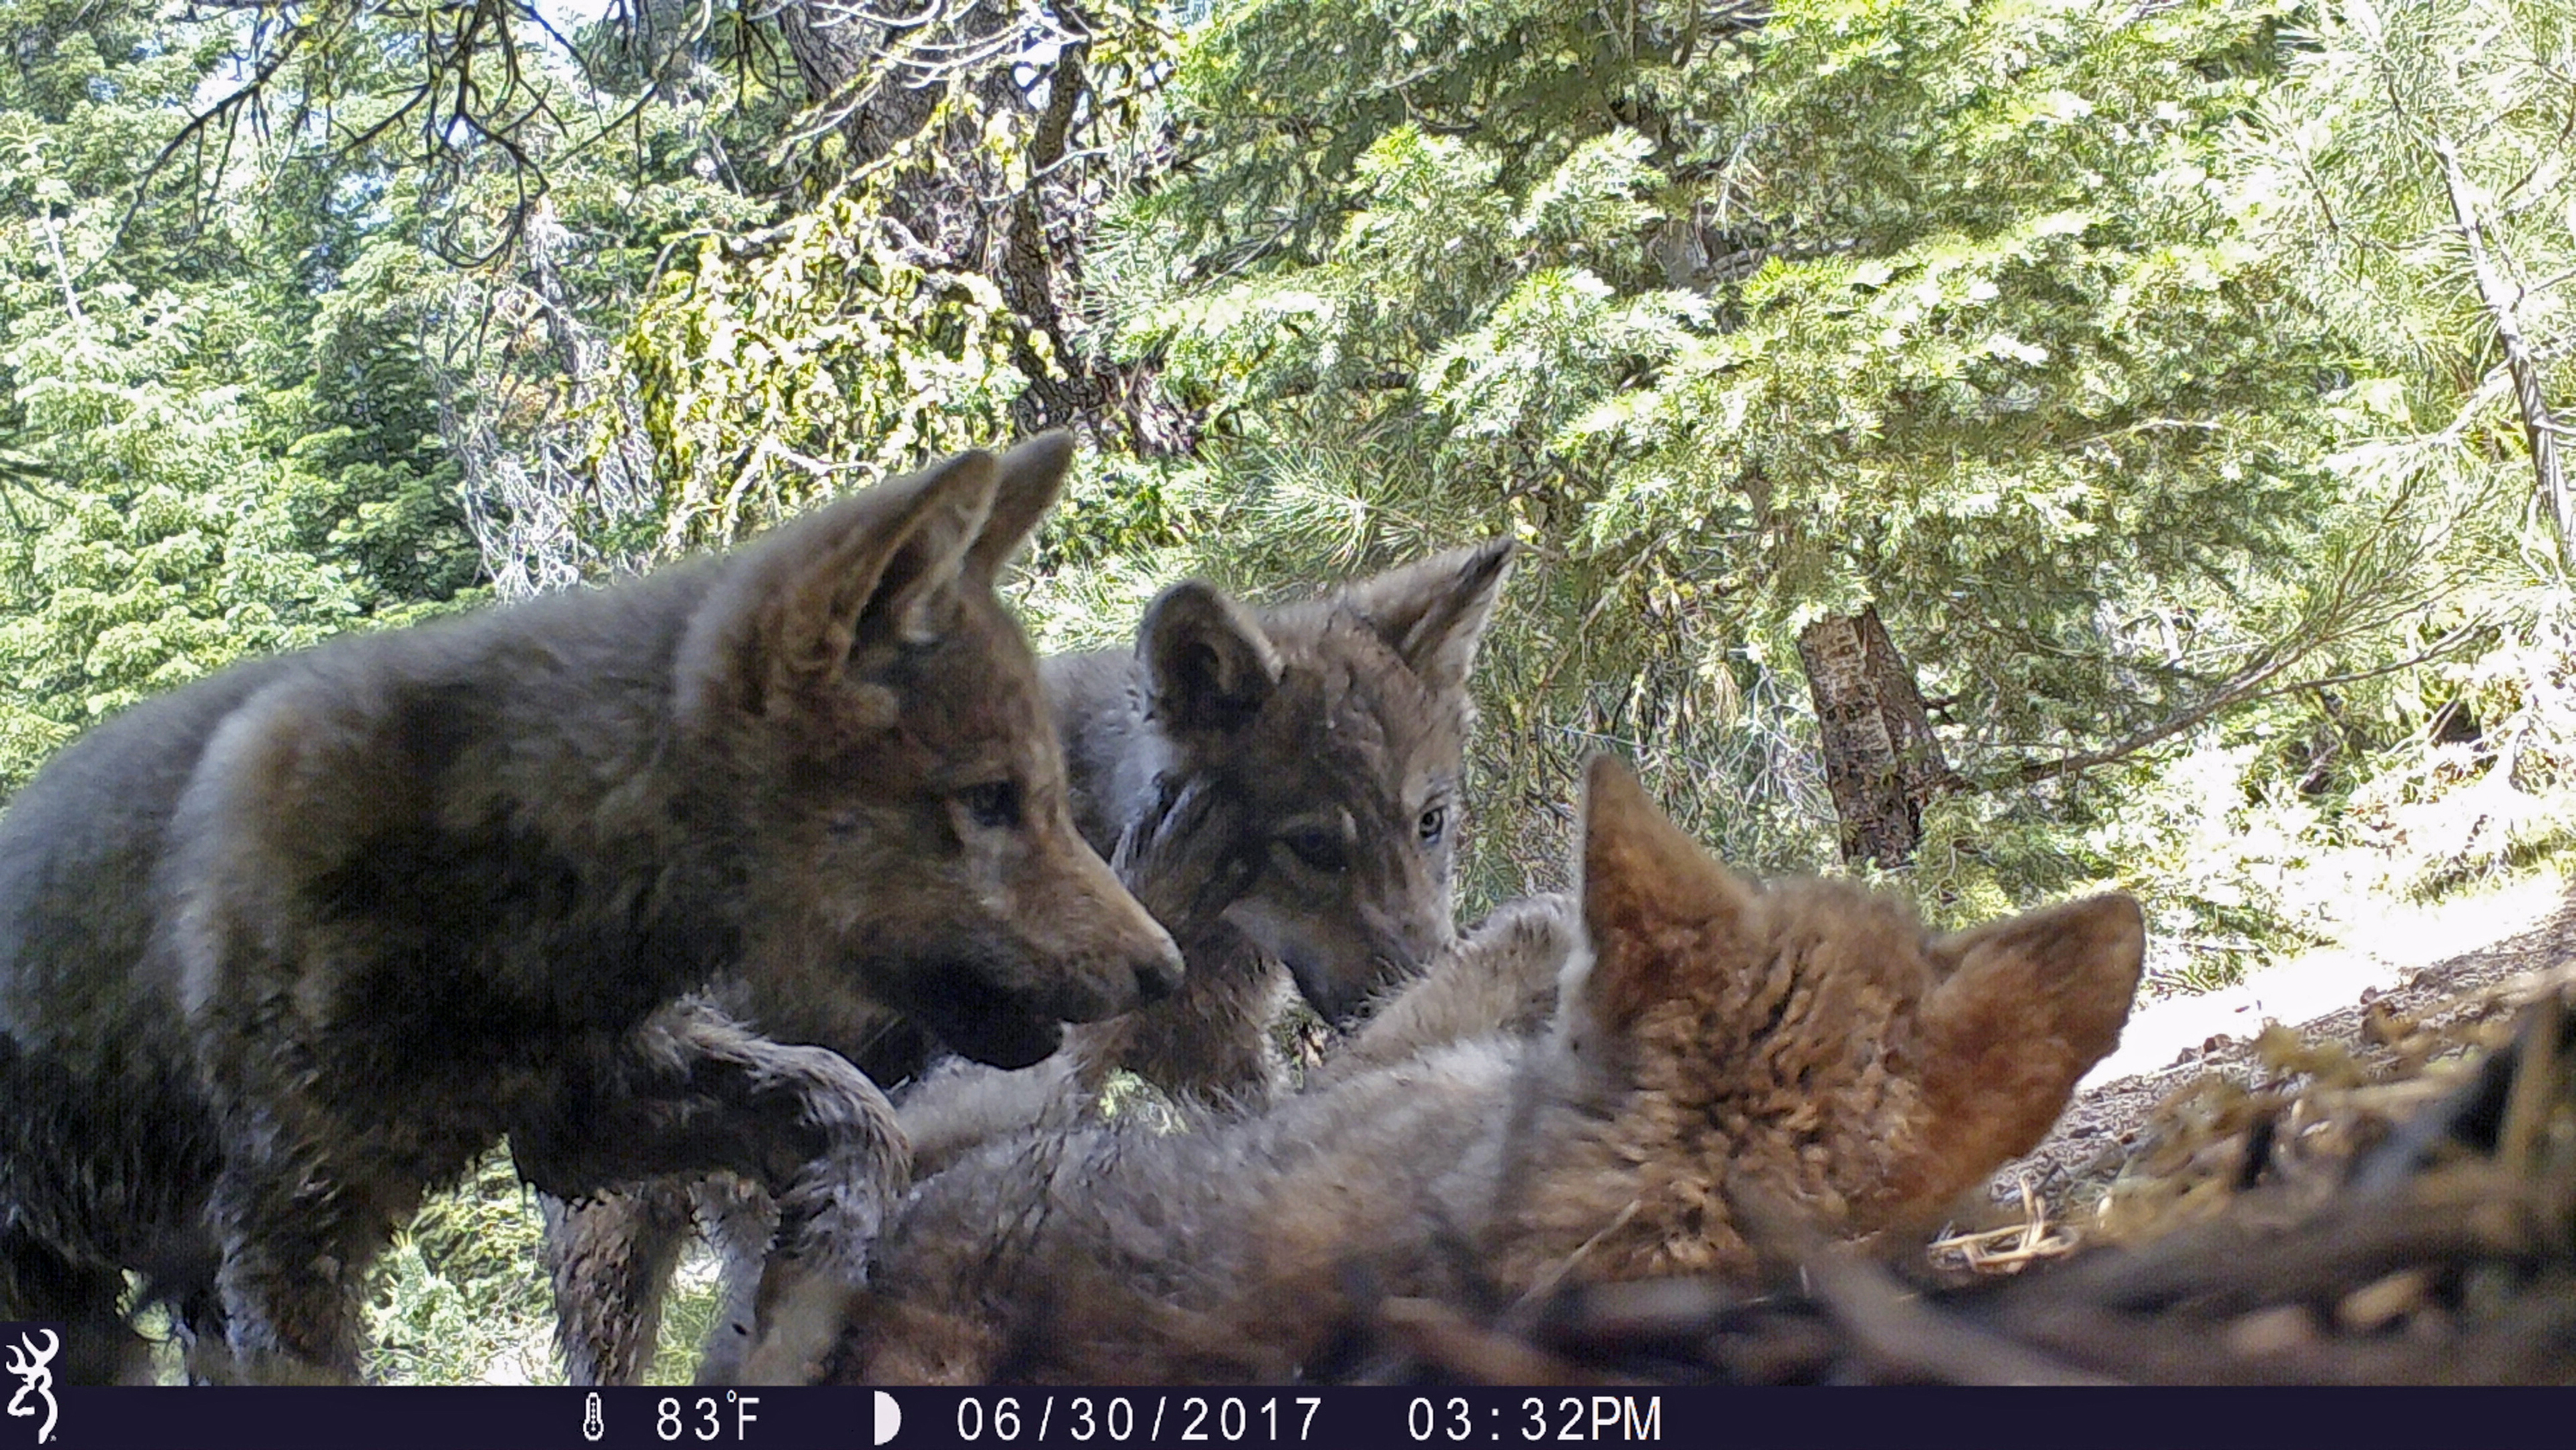 This June 30, 2017 remote camera image released by the U.S. Forest Service shows a female gray wolf and her mate with a pup born in 2017 in the wilds of Lassen National Forest in Northern California. U.S. wildlife officials plan to lift protections for gray wolves across the Lower 48 states, re-igniting the legal battle over a predator that's run into conflicts with farmers and ranchers after rebounding in some regions, an official told The Associated Press, Wednesday, March 6, 2019. (U.S. Forest Service via AP, File)